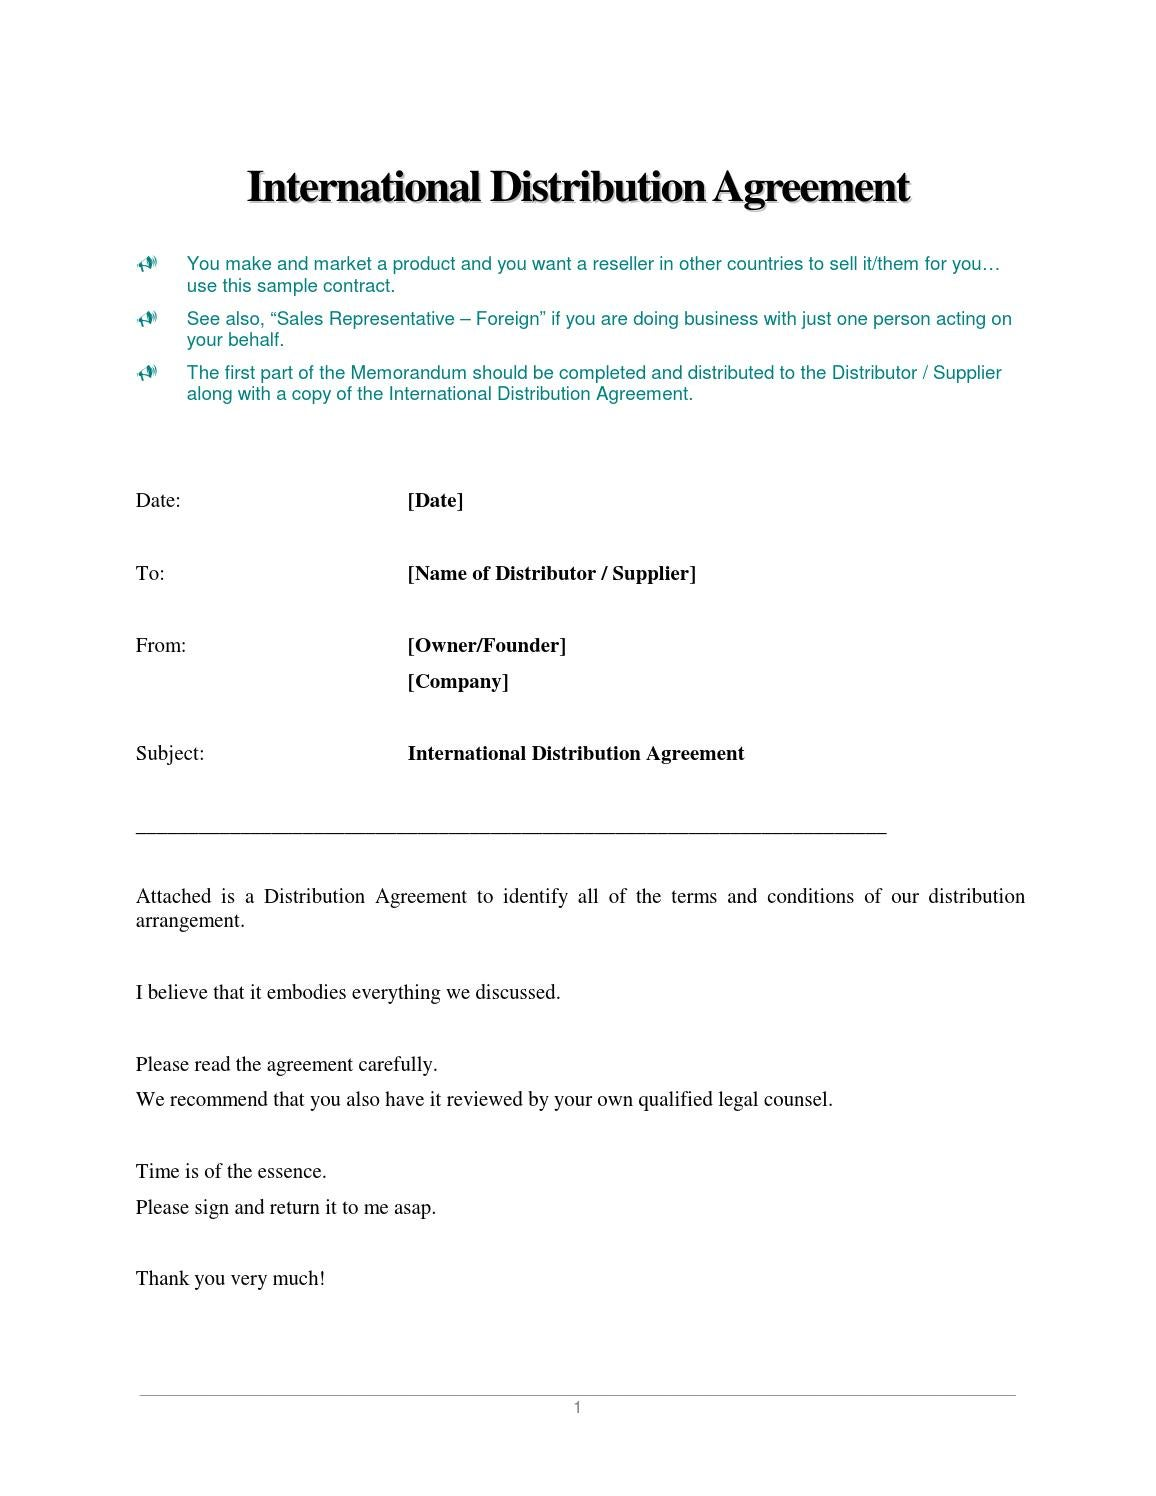 International Distribution Agreement By Joanna0701 Issuu